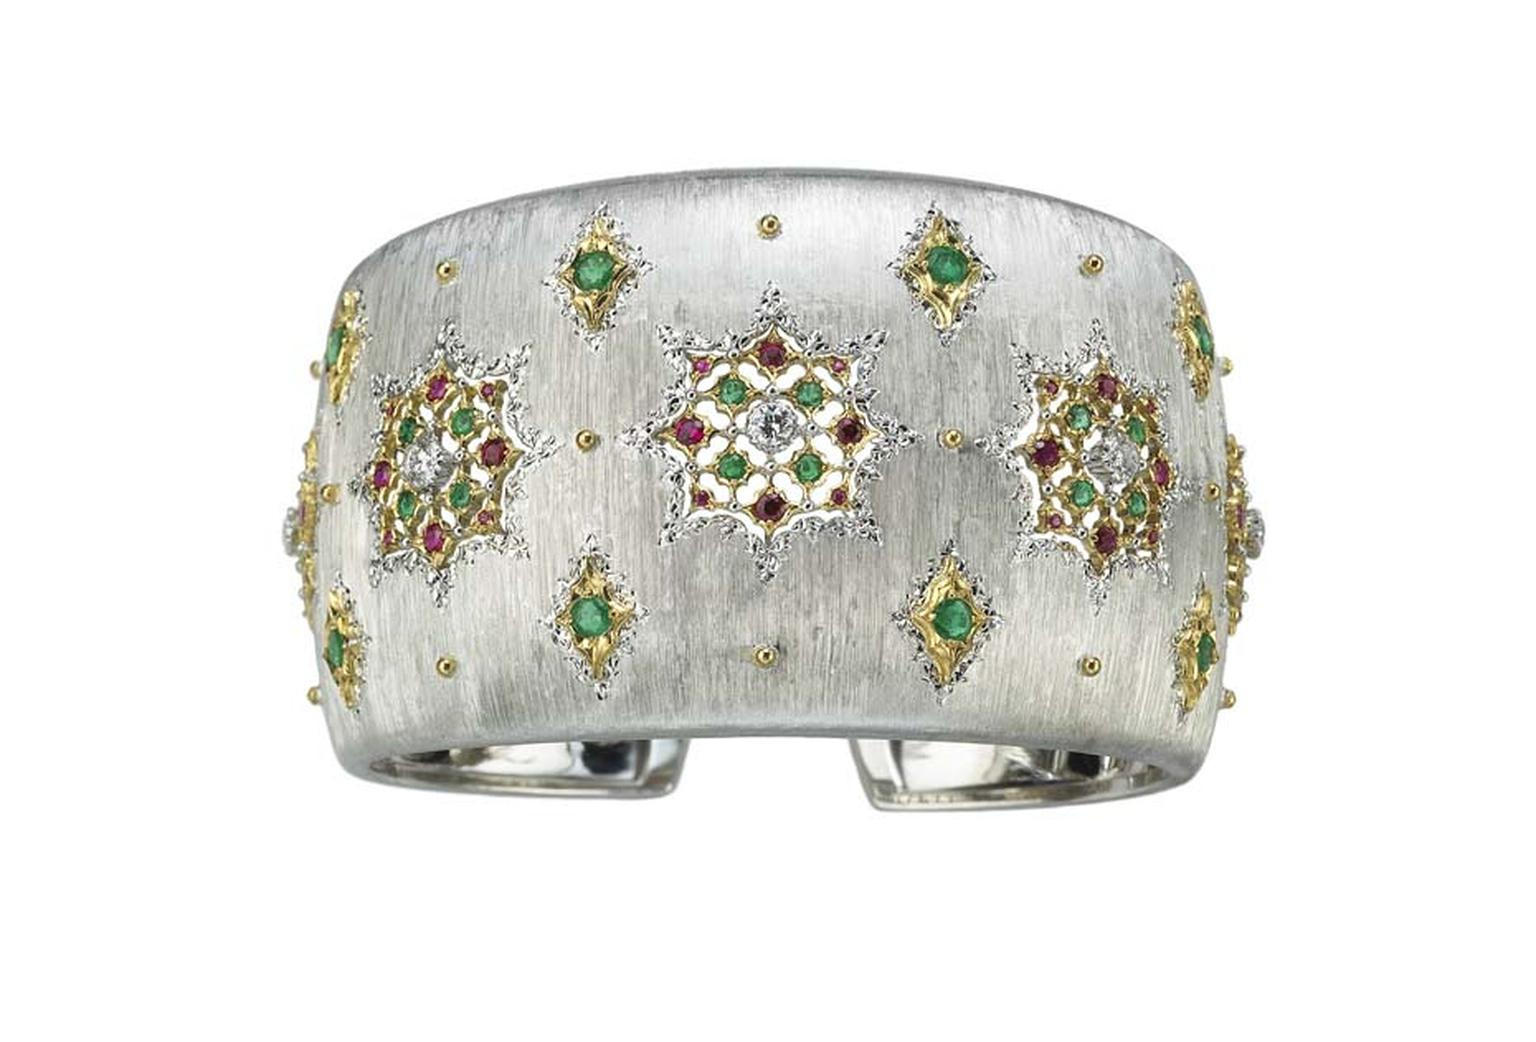 Buccellati Lastra cuff featuring round faceted rubies and emeralds, and brilliant-cut diamonds.